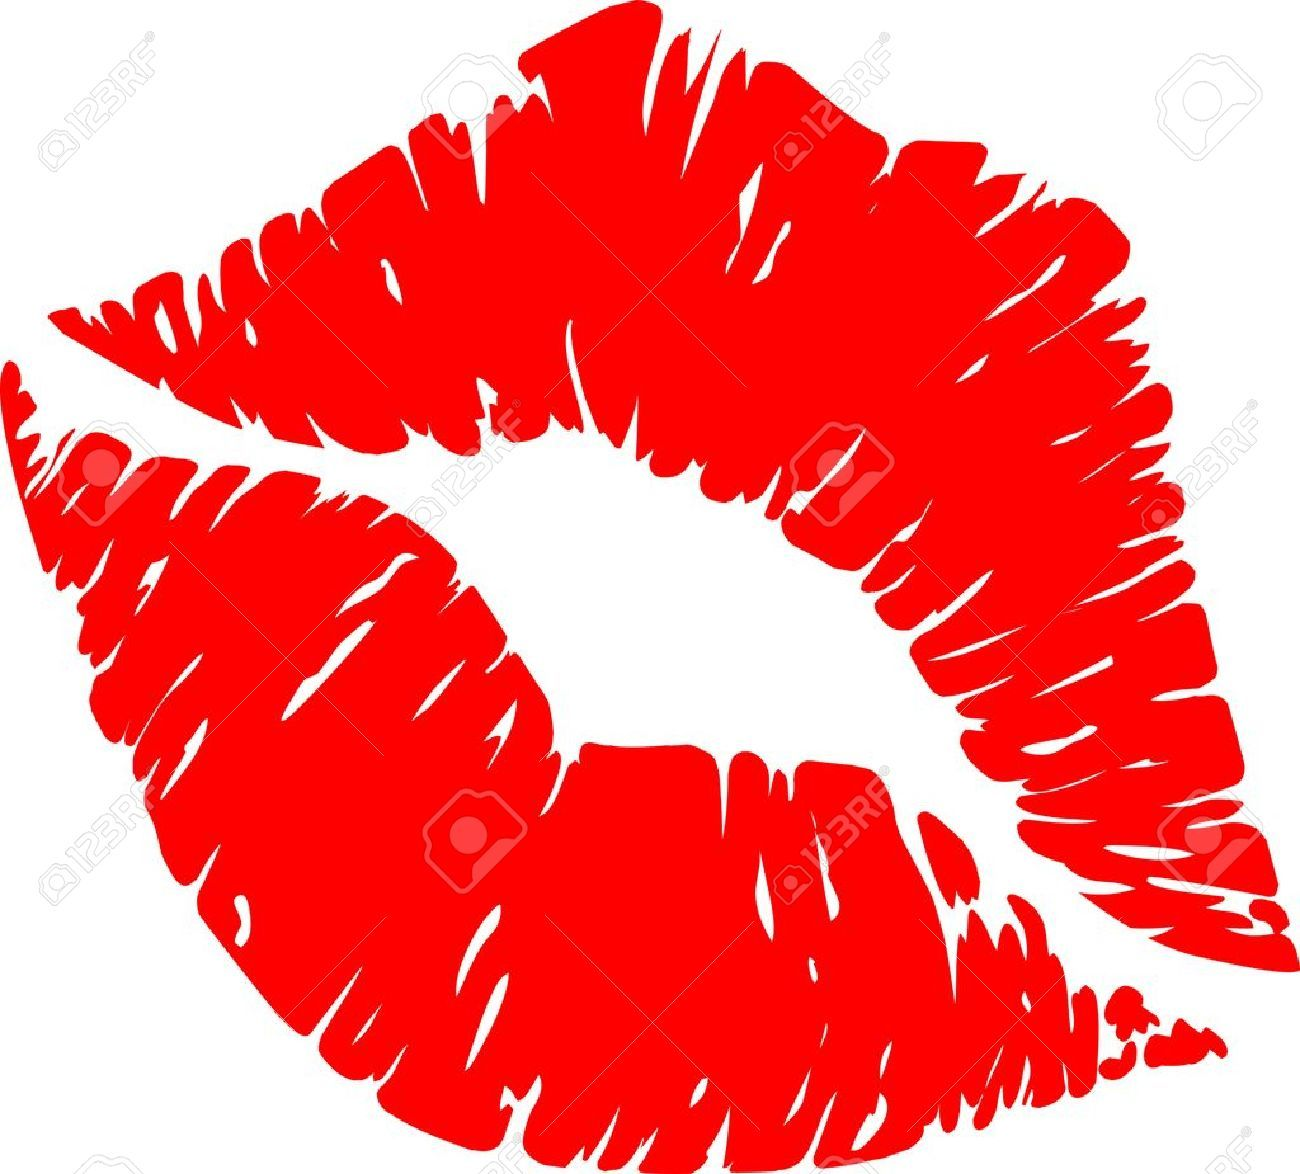 Red kiss clipartfest graphic. Lips clipart